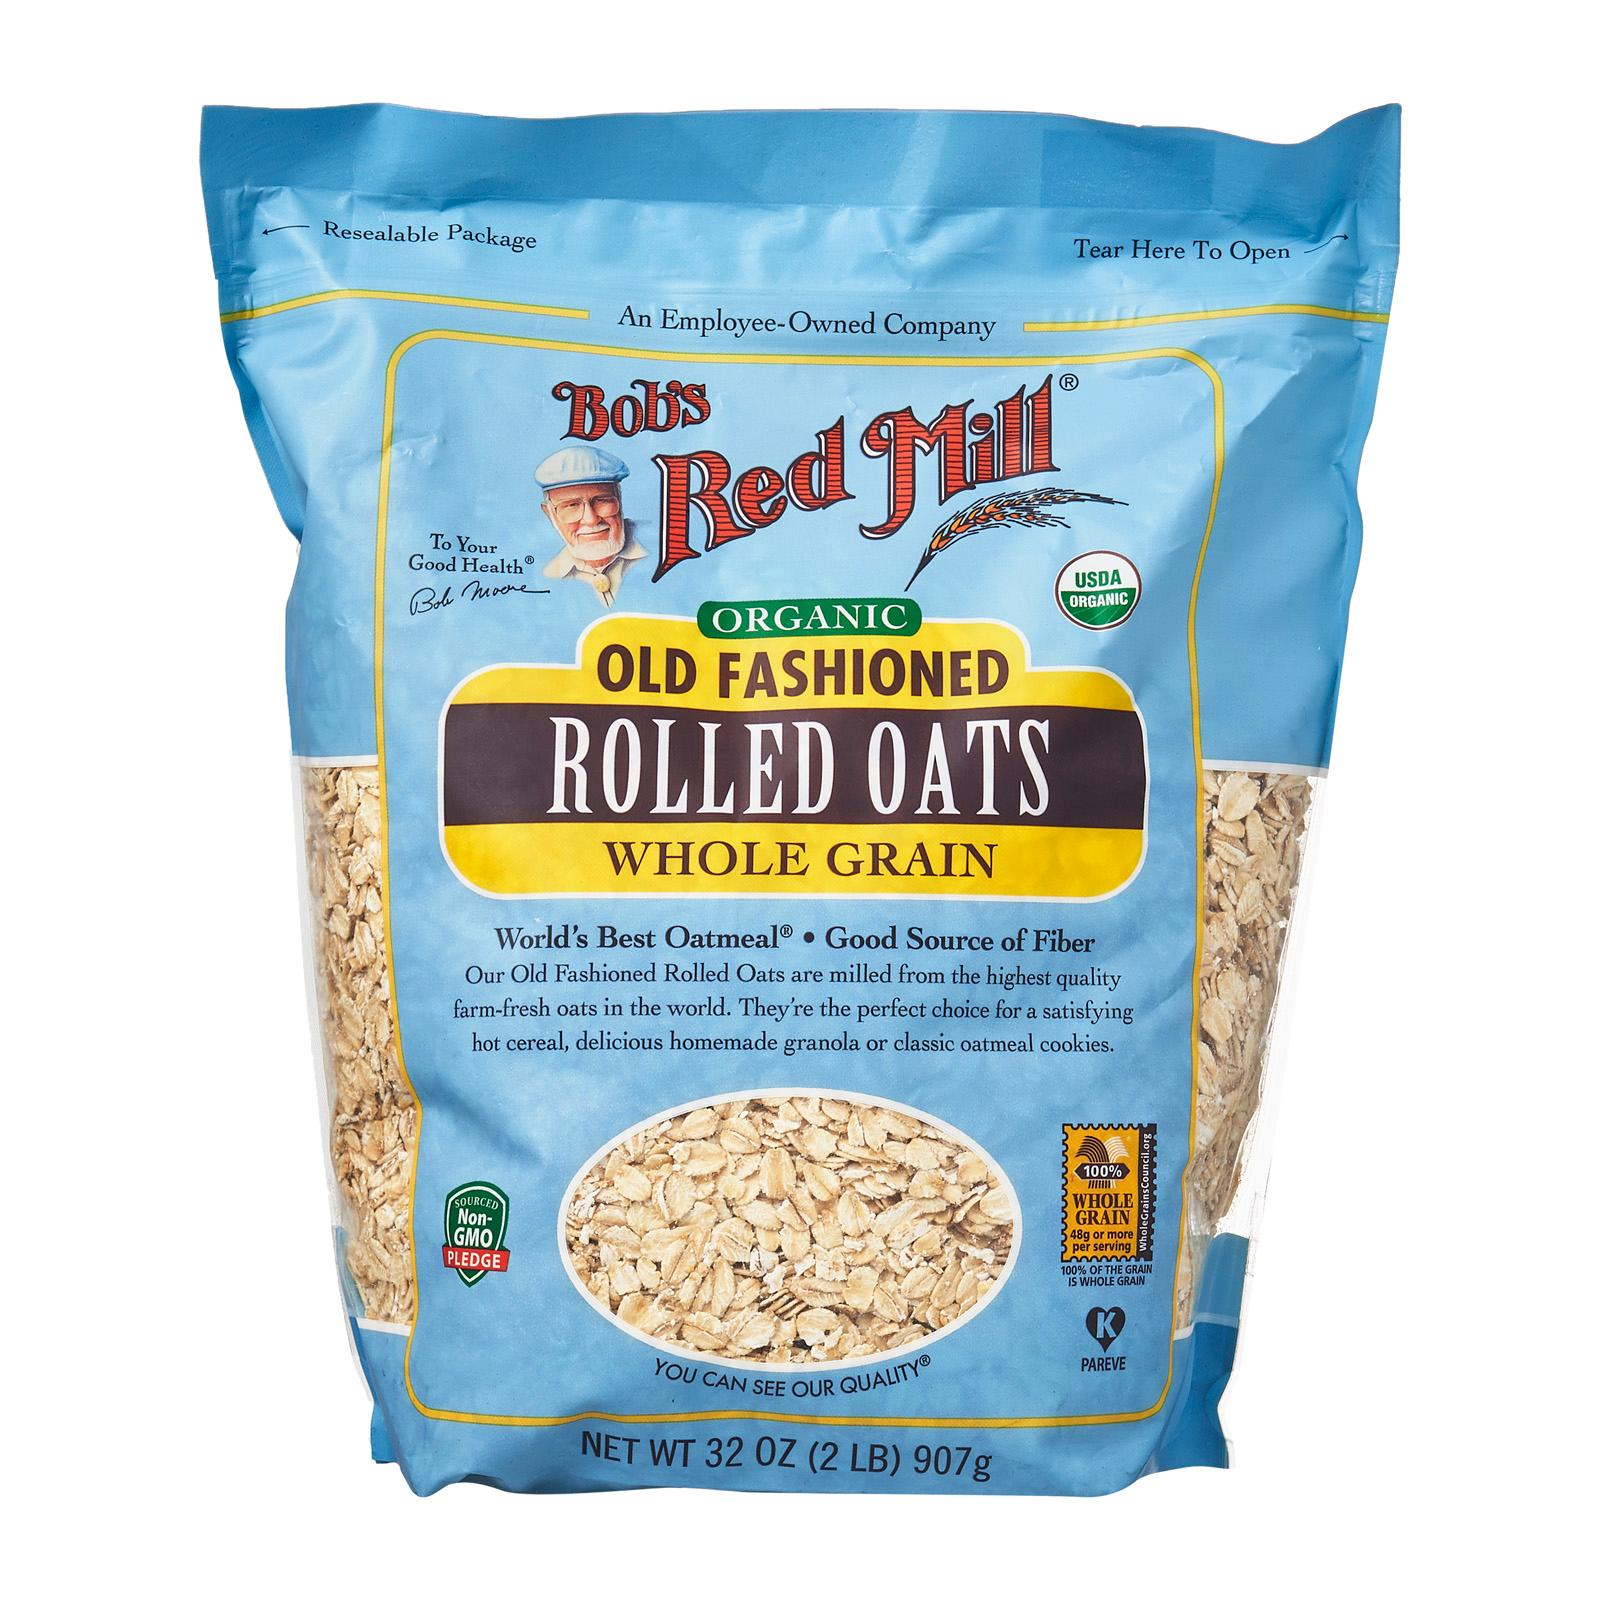 Bob's Red Mill Organic Old Fashioned Regular Rolled Whole Grain Oats